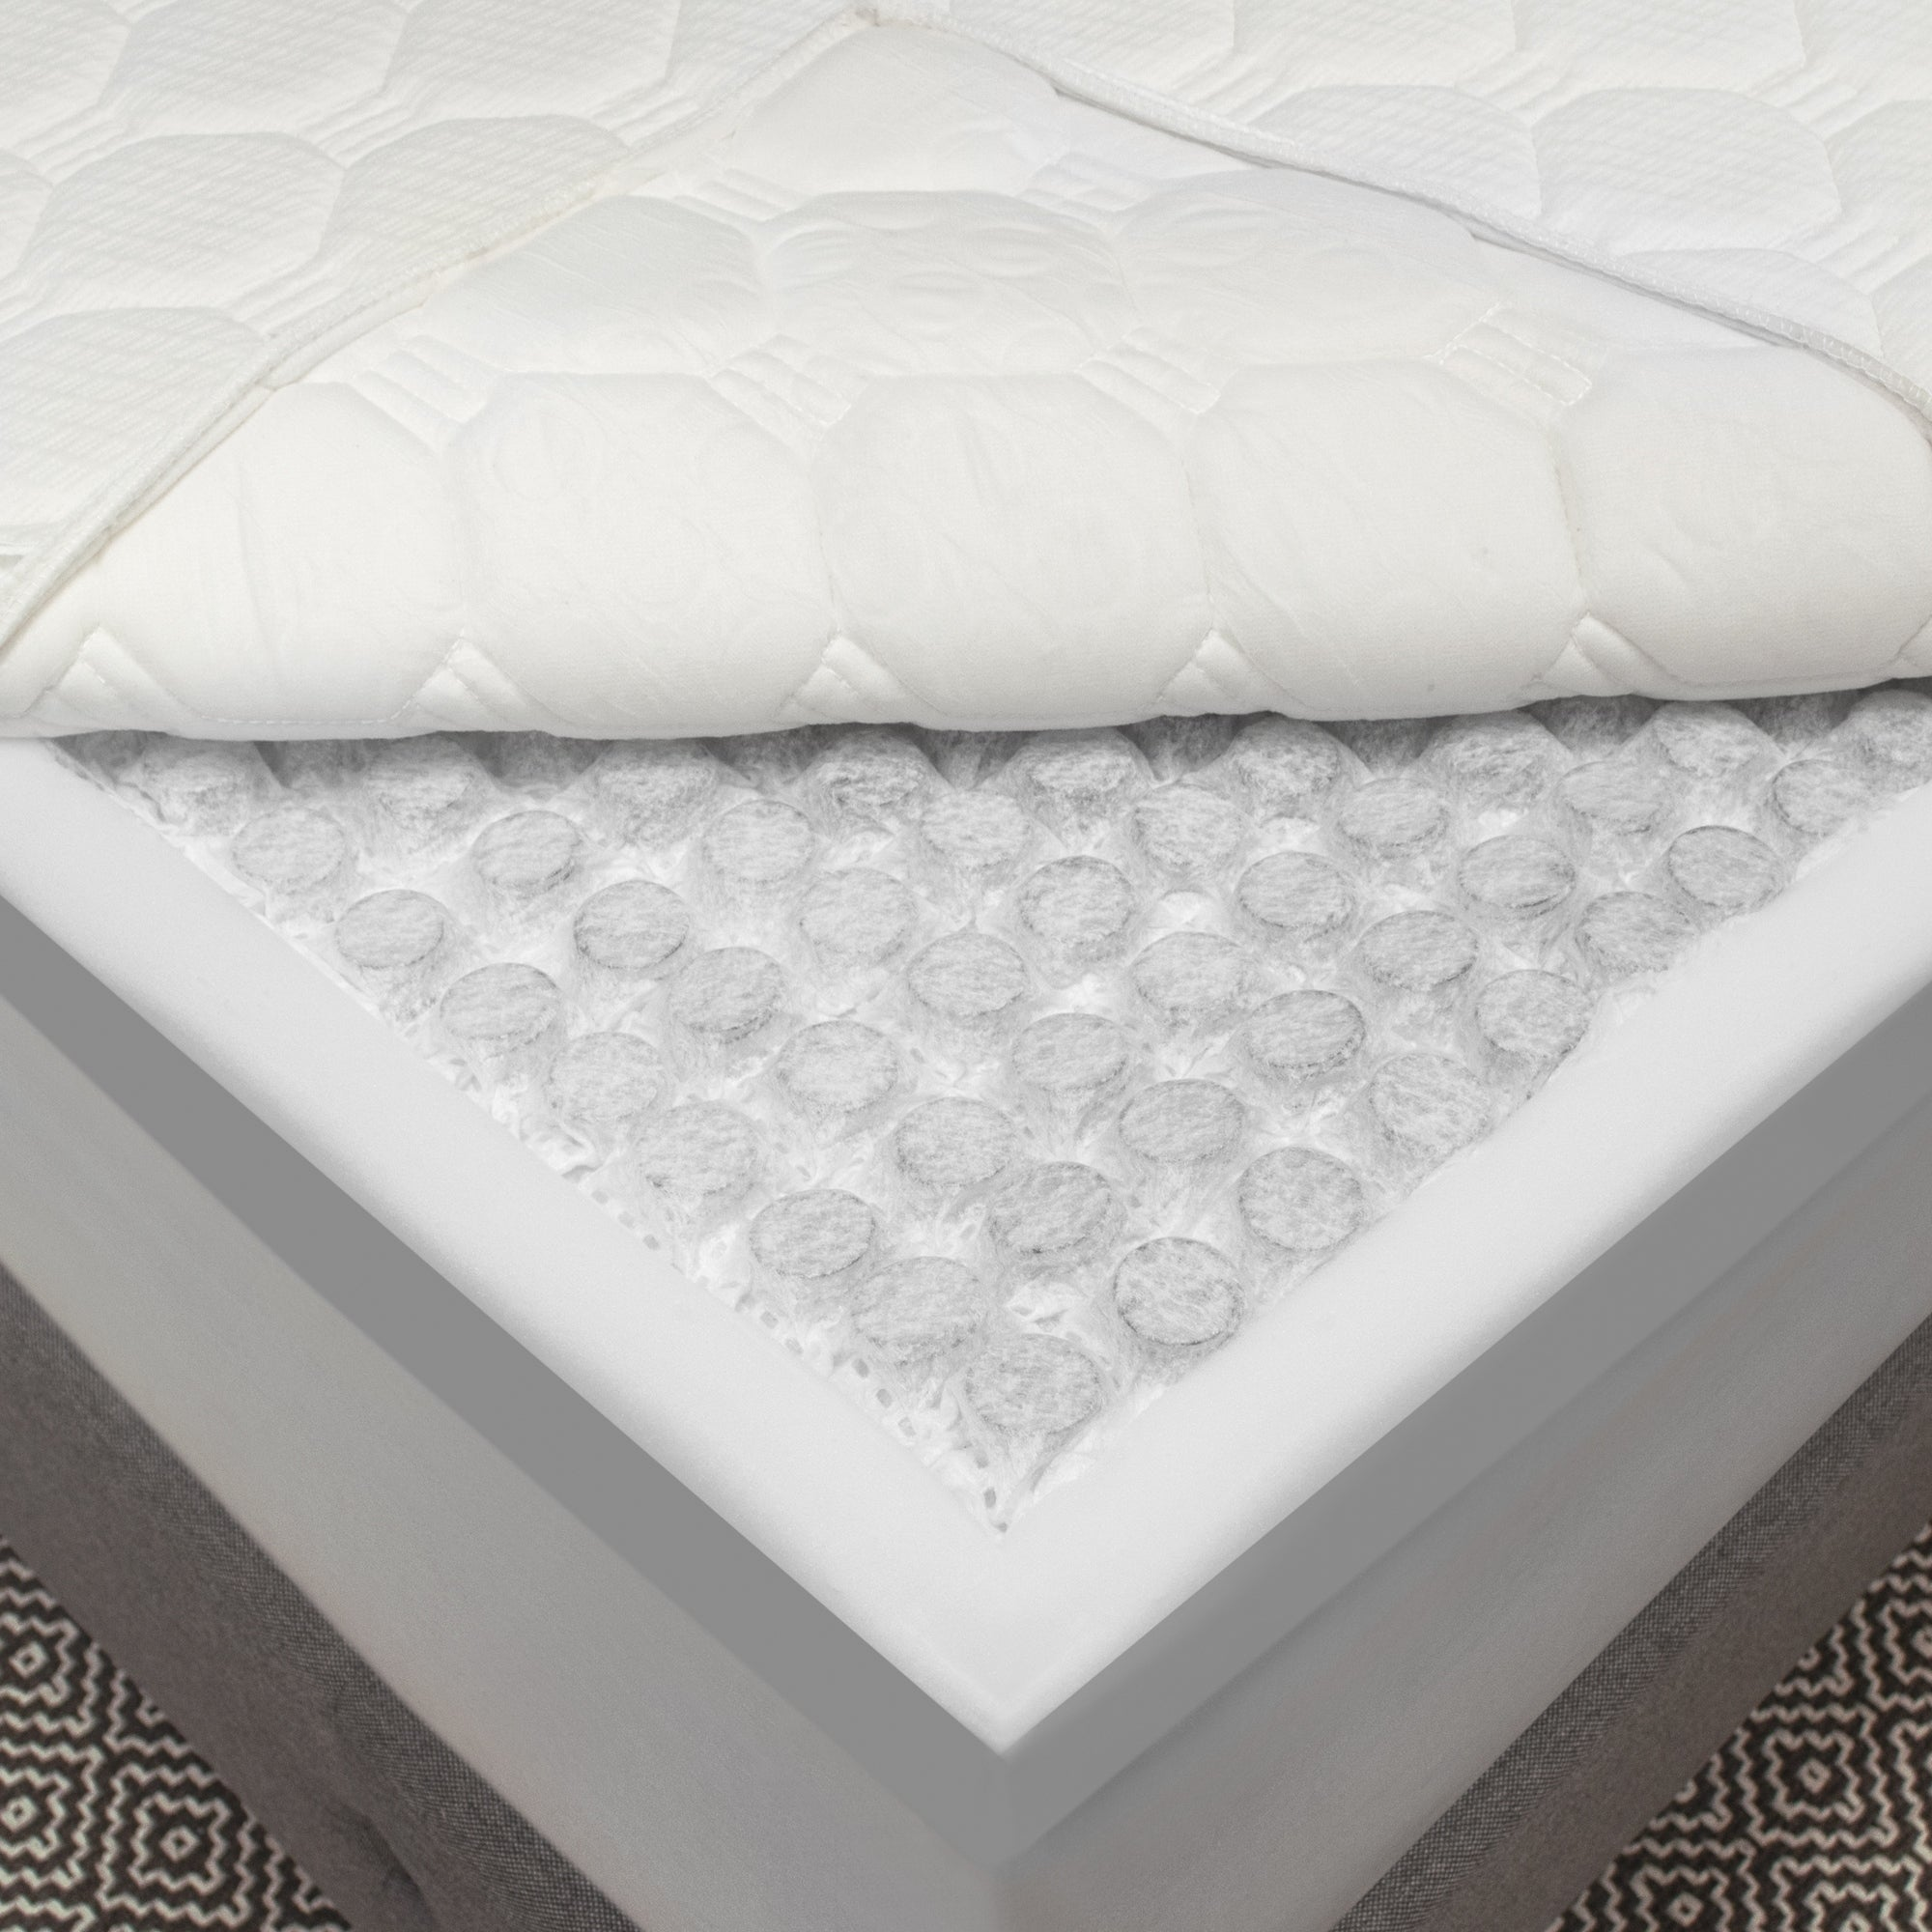 68cc9b86442b Shop SwissLux 3.5-inch Hybrid Micro Coil and Memory Foam Mattress Topper - Free  Shipping Today - Overstock - 20538889